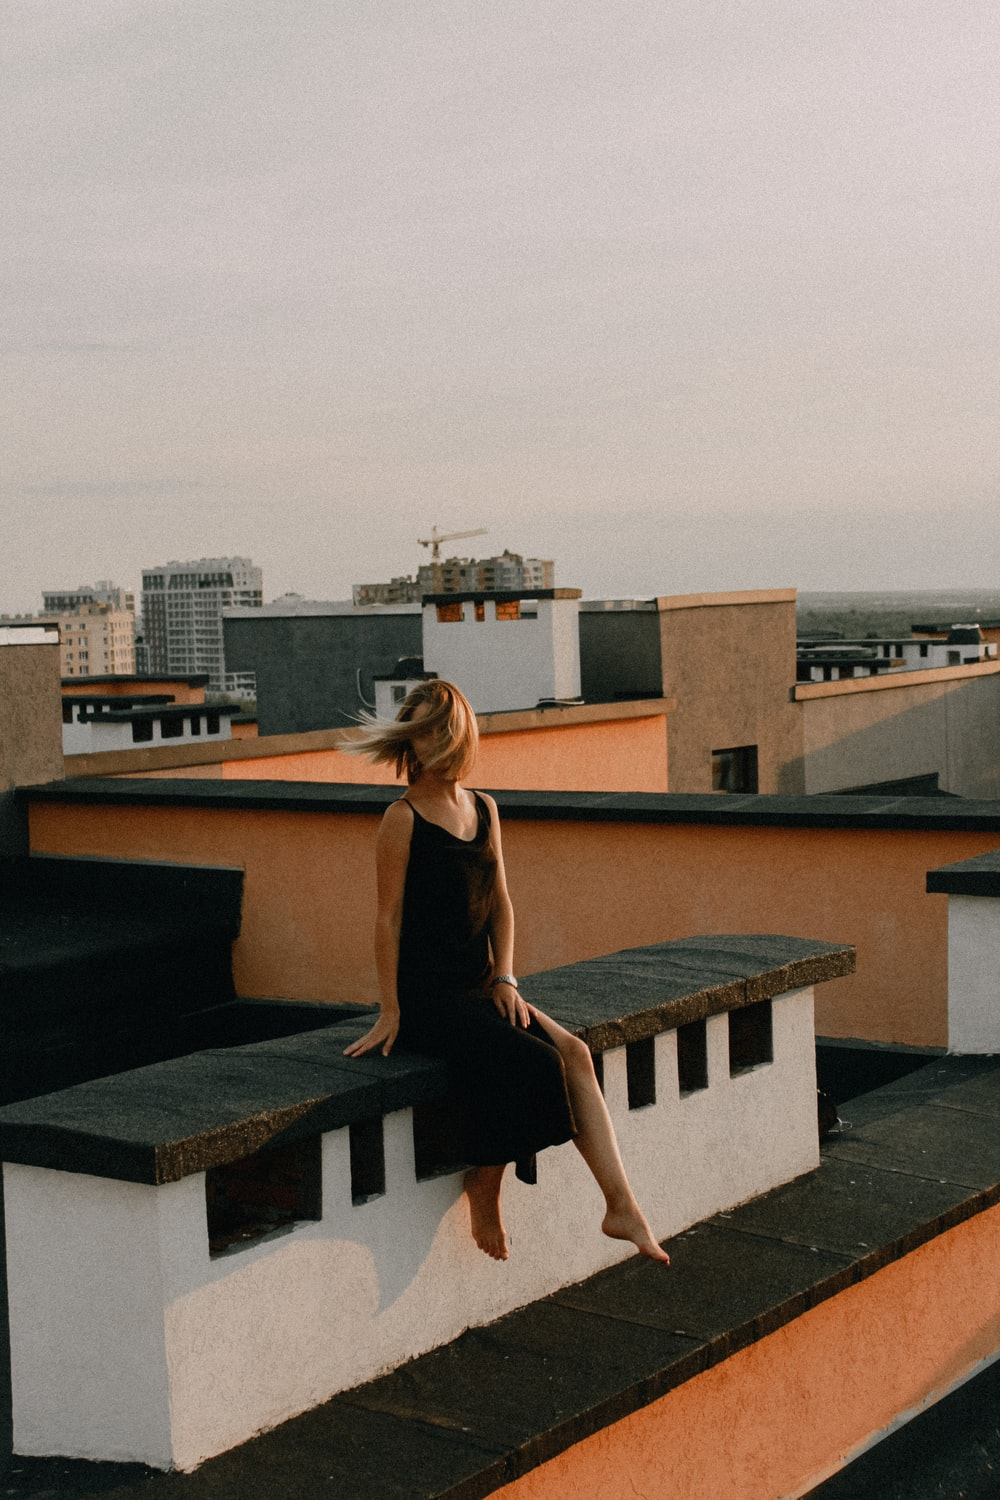 woman in black dress standing on roof top during daytime